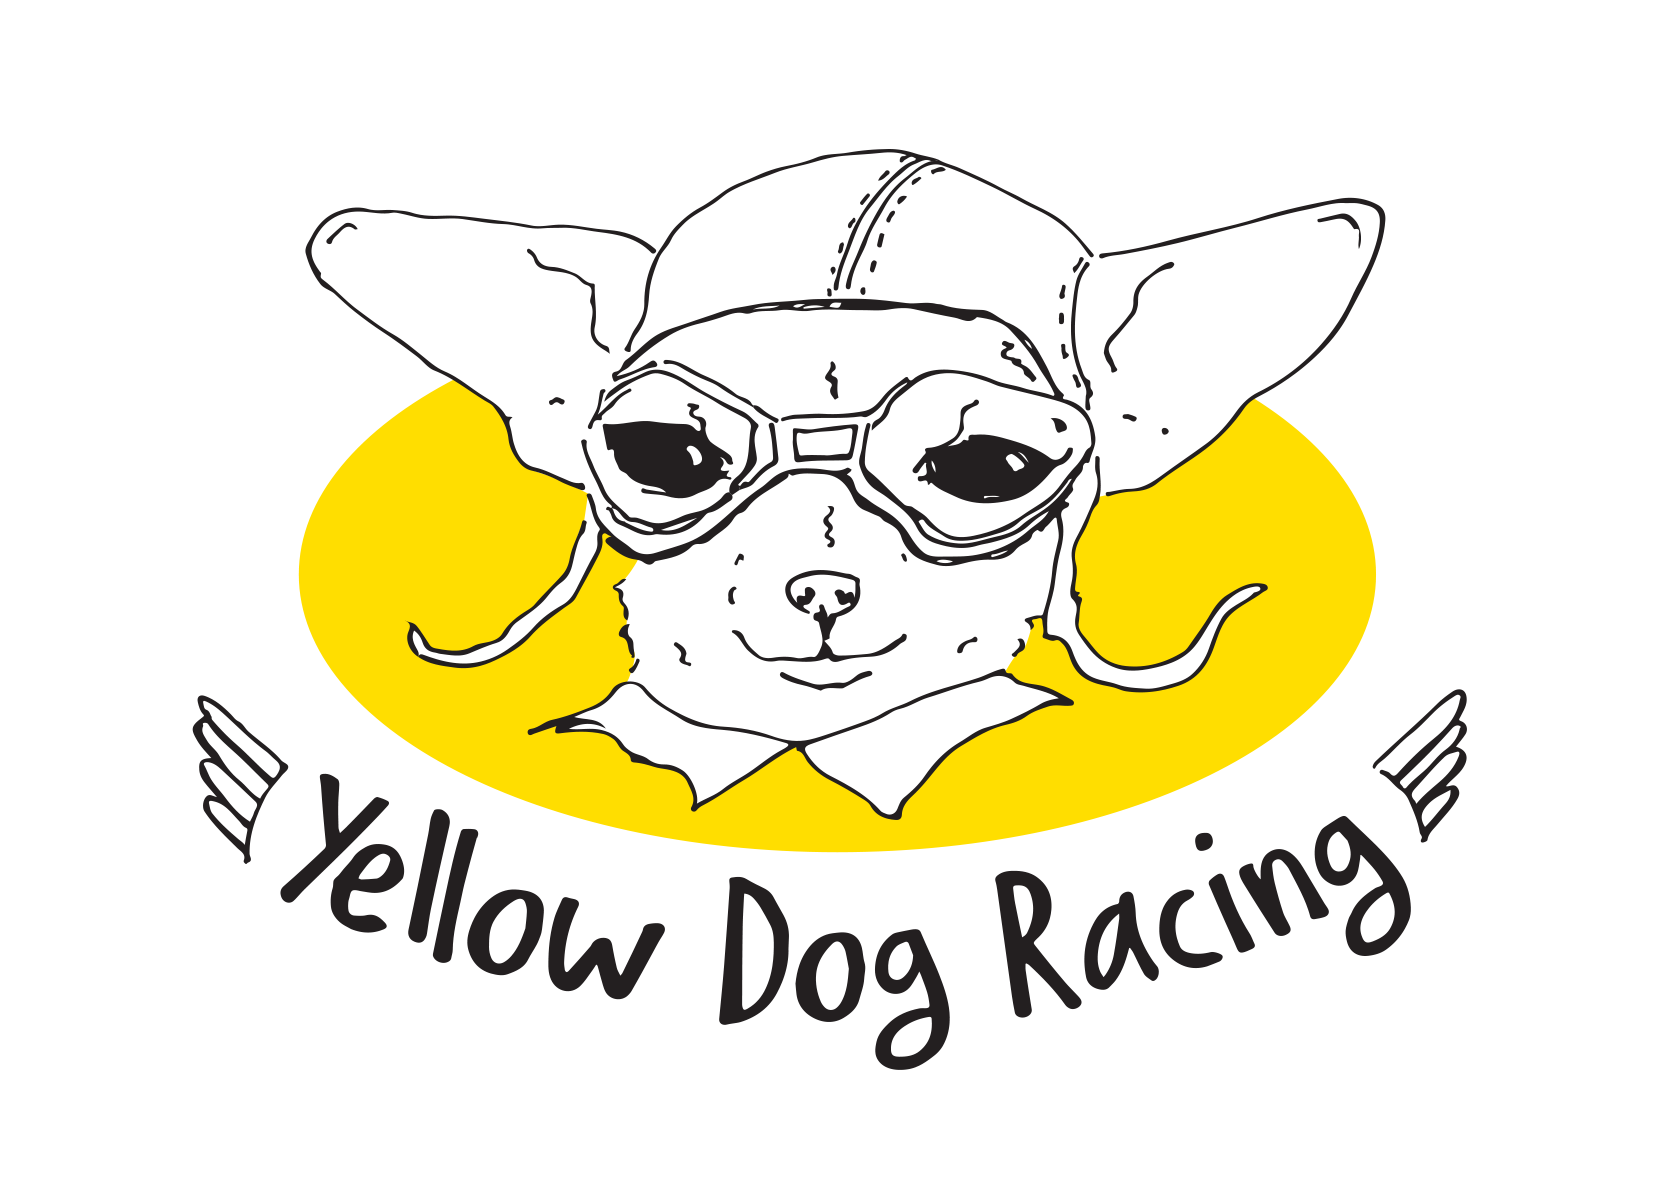 Yellow Dog Racing